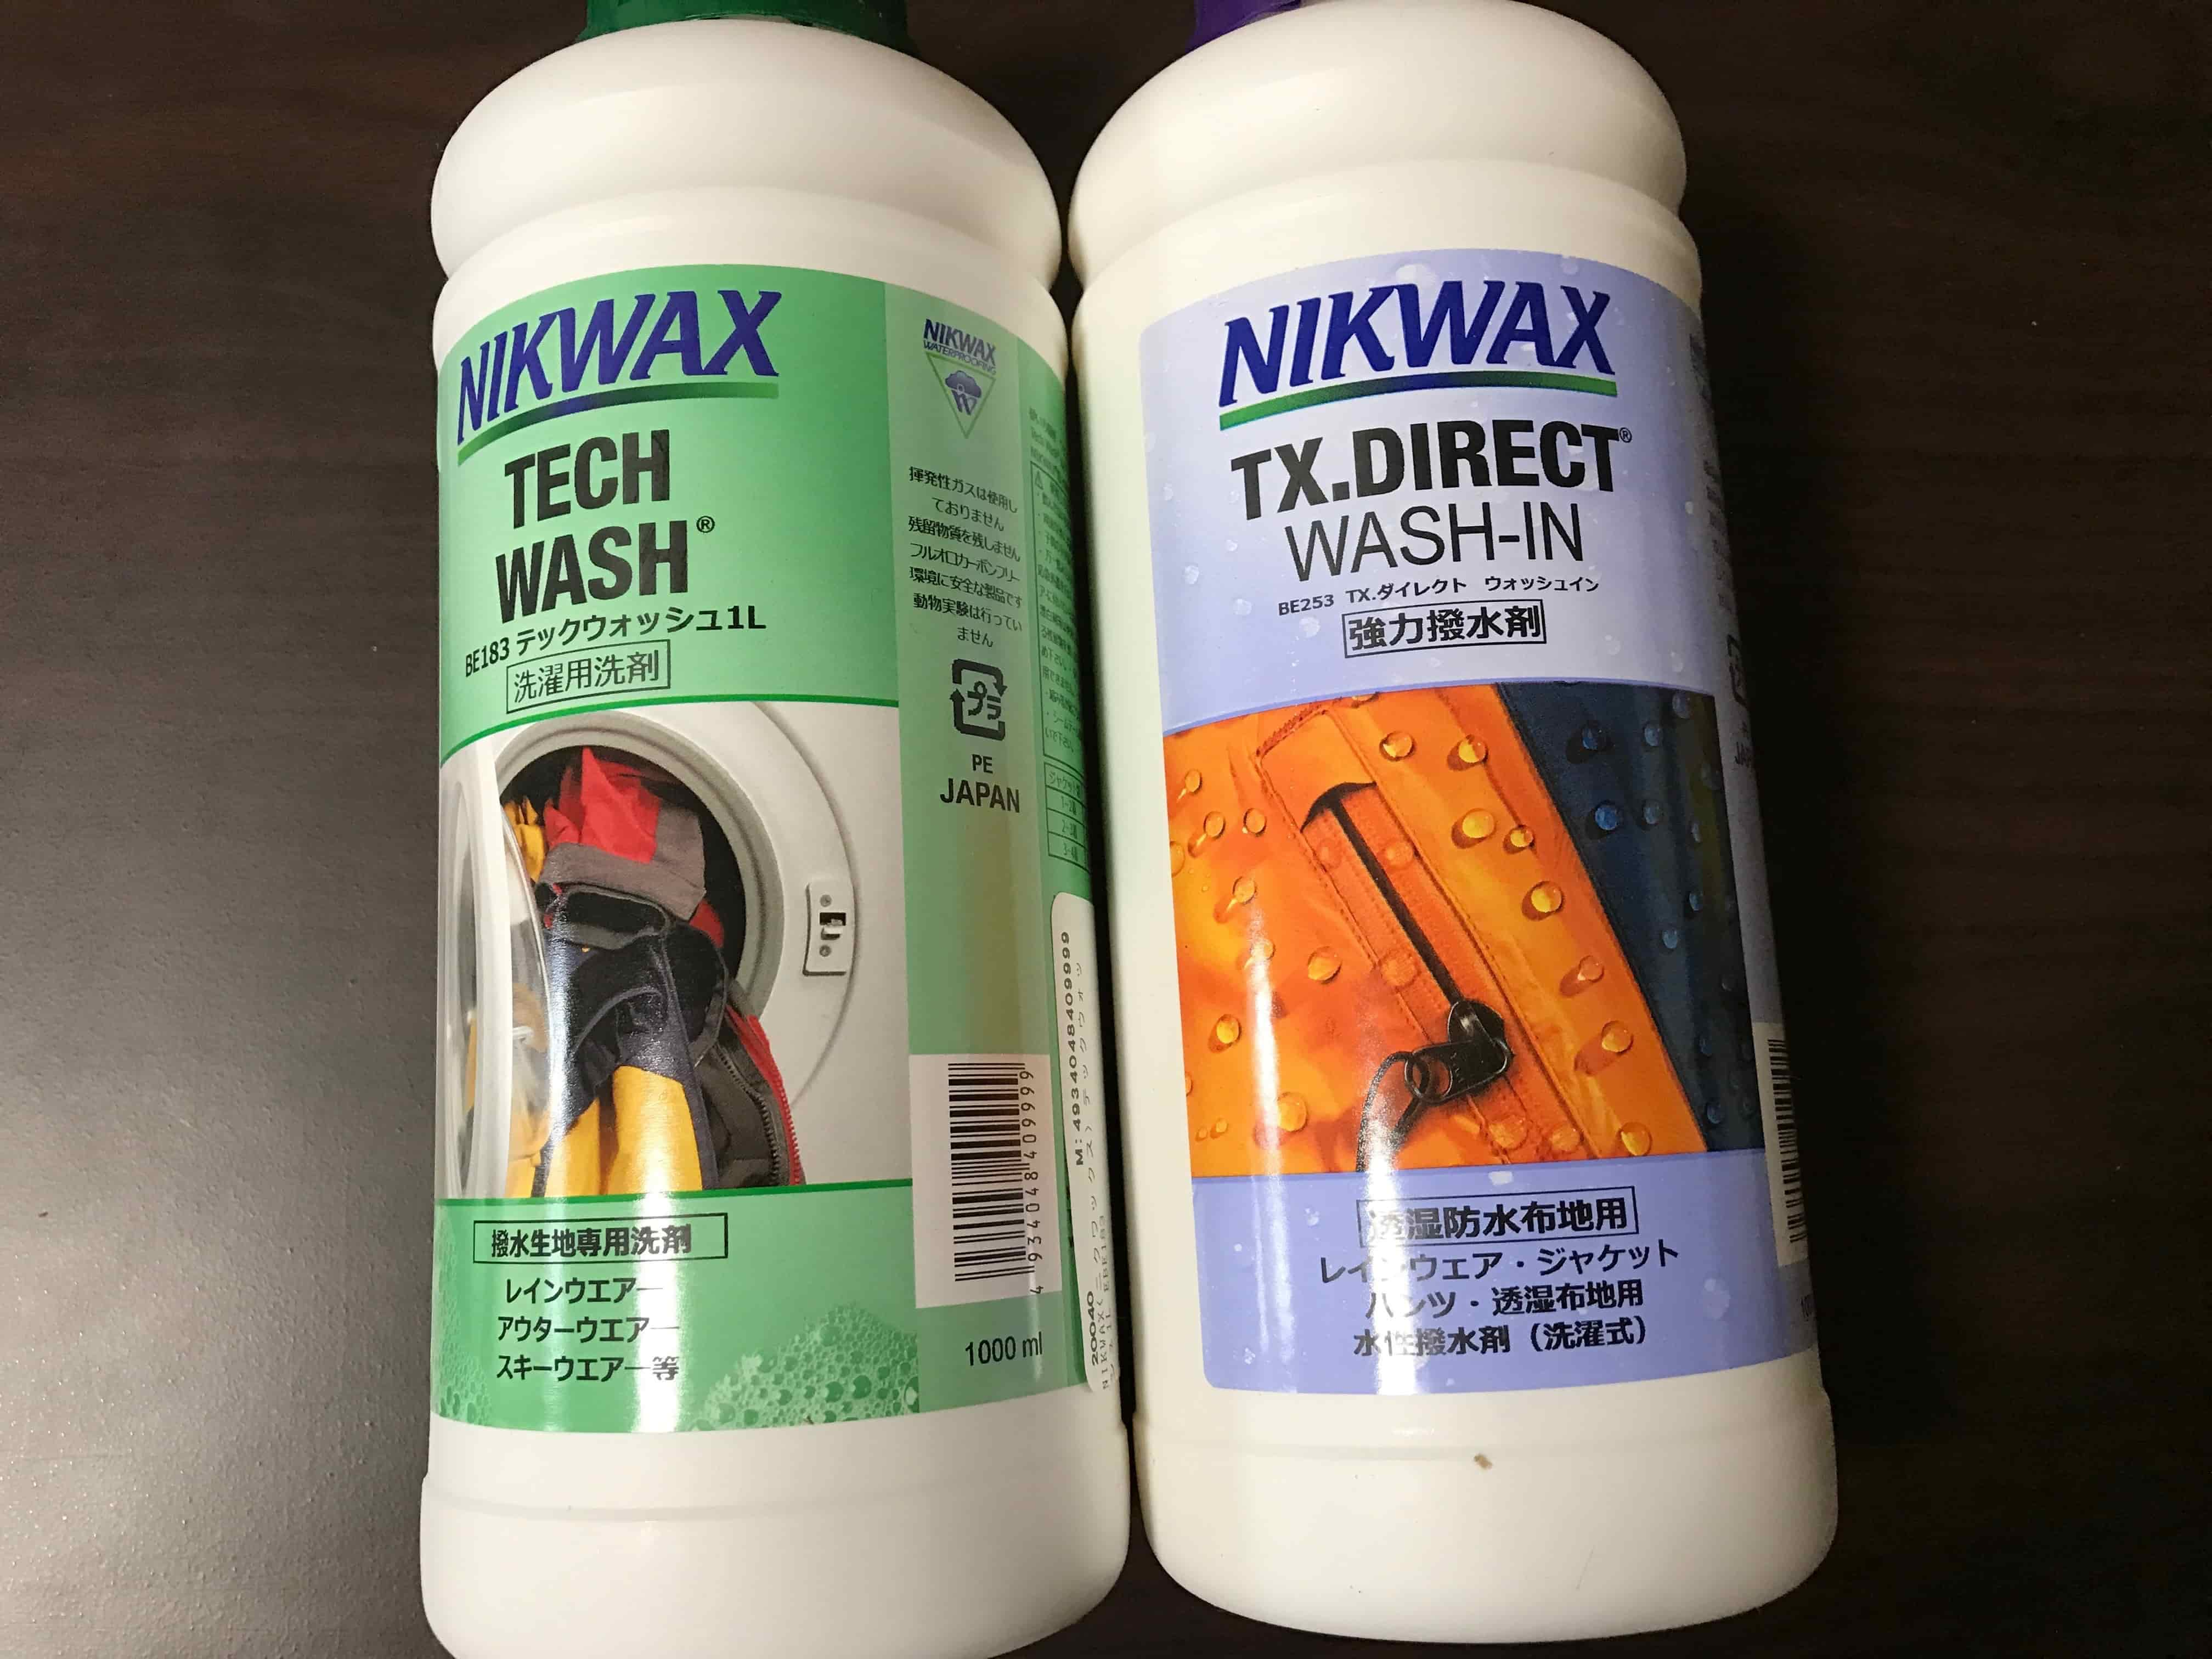 How to revive the water repellency using NIKWAX and its effect(water proof)